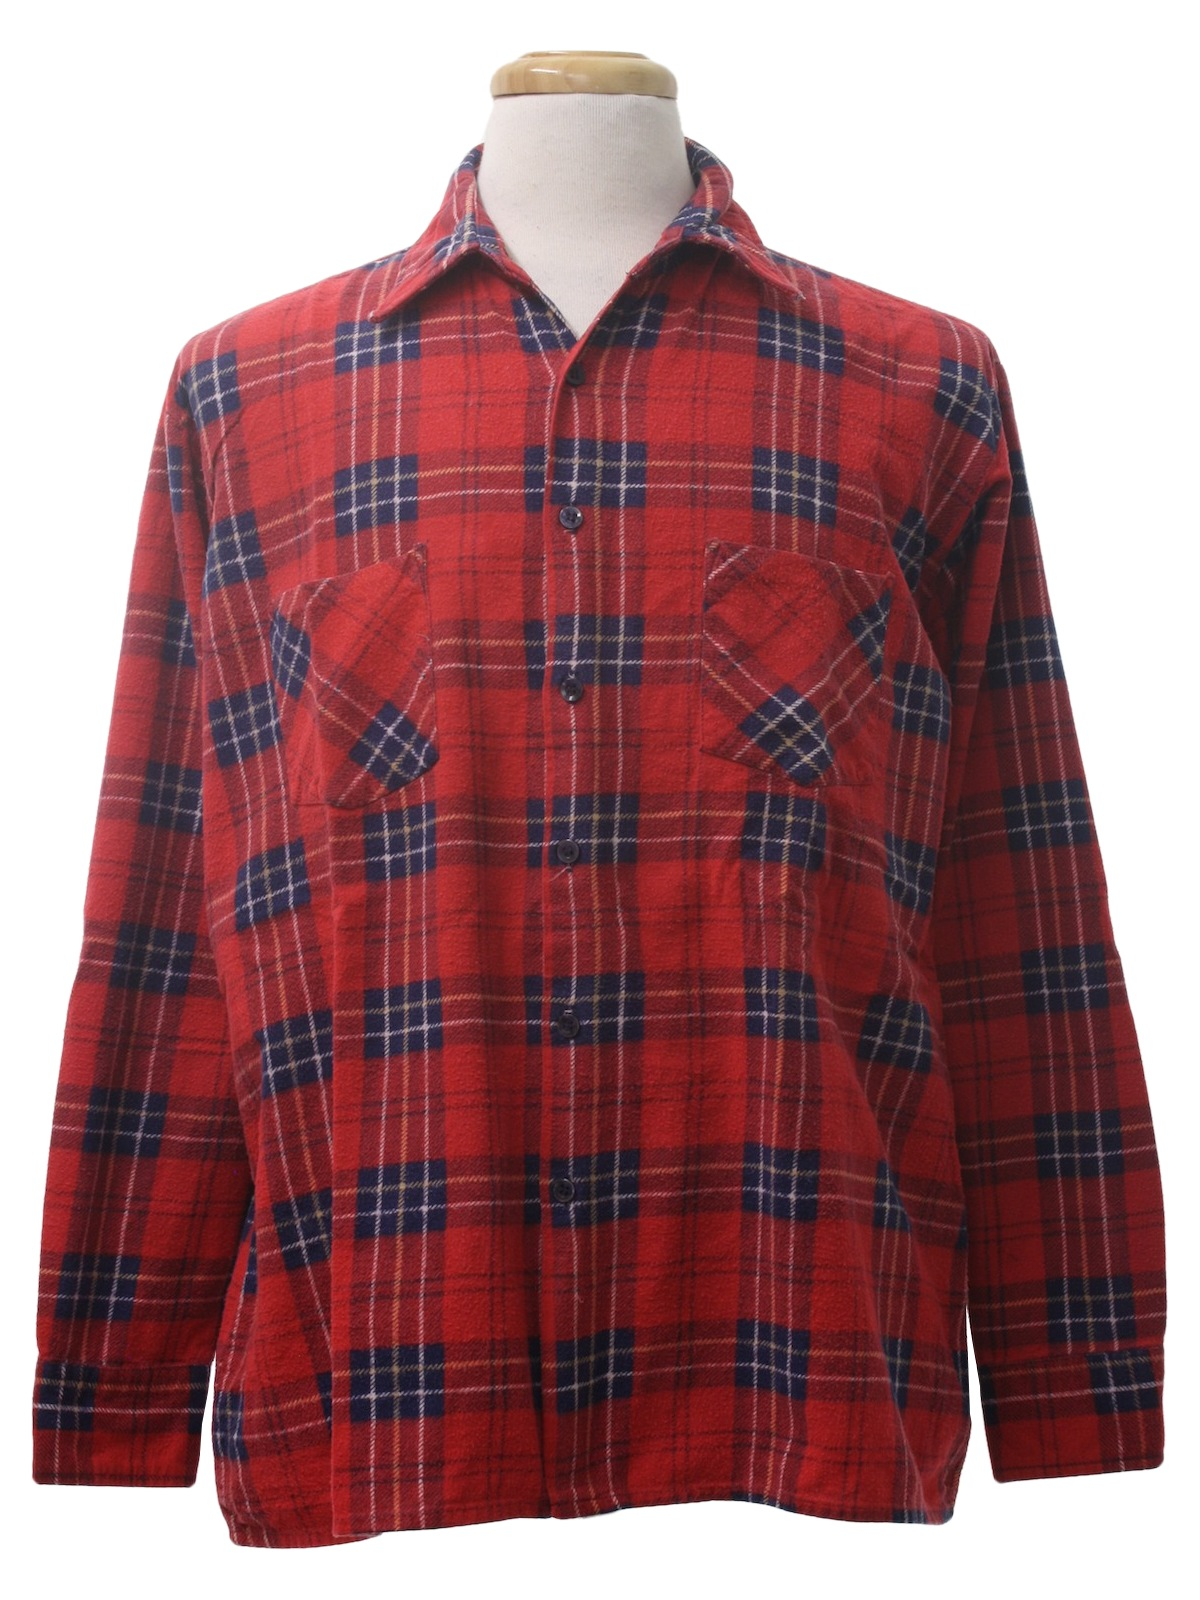 Vintage saugatuck nineties shirt 90s saugatuck mens red for Navy blue and red flannel shirt